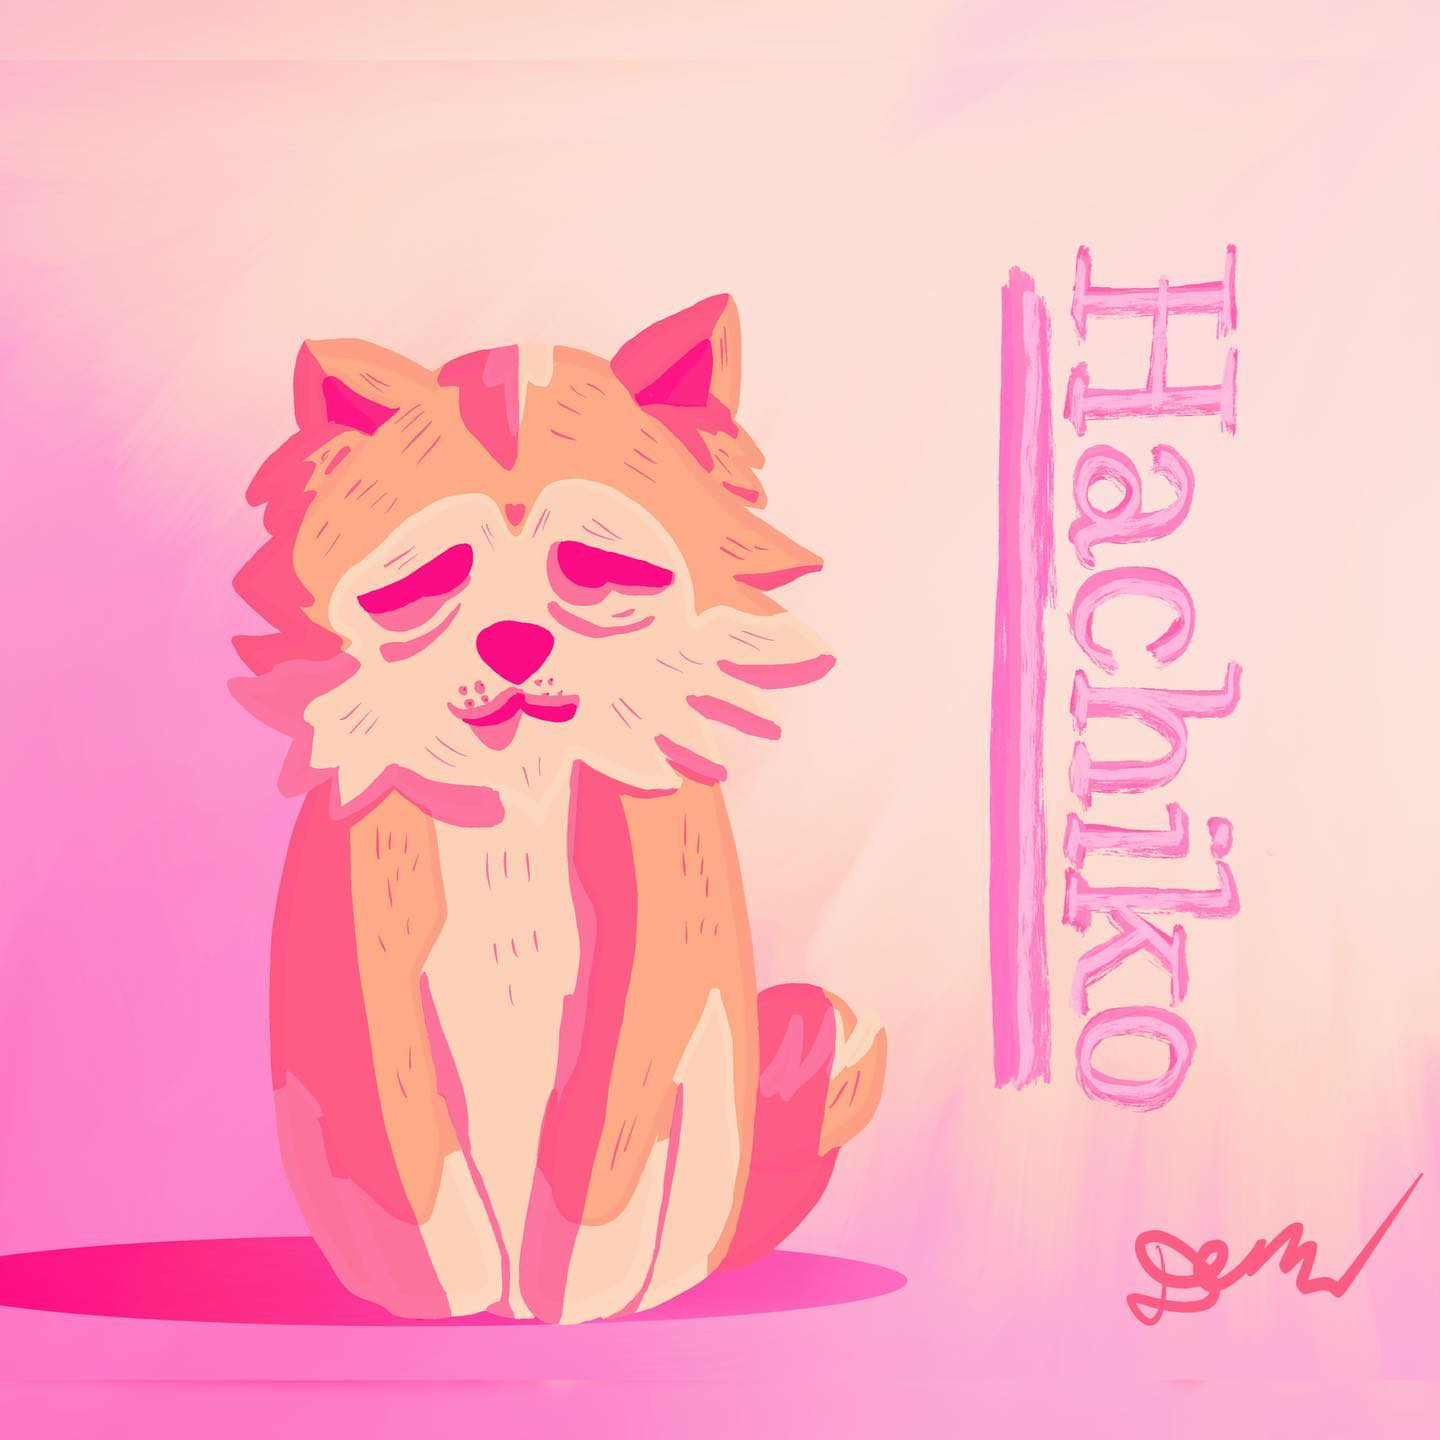 Hachiko, The Loyalist Friend Ver.2